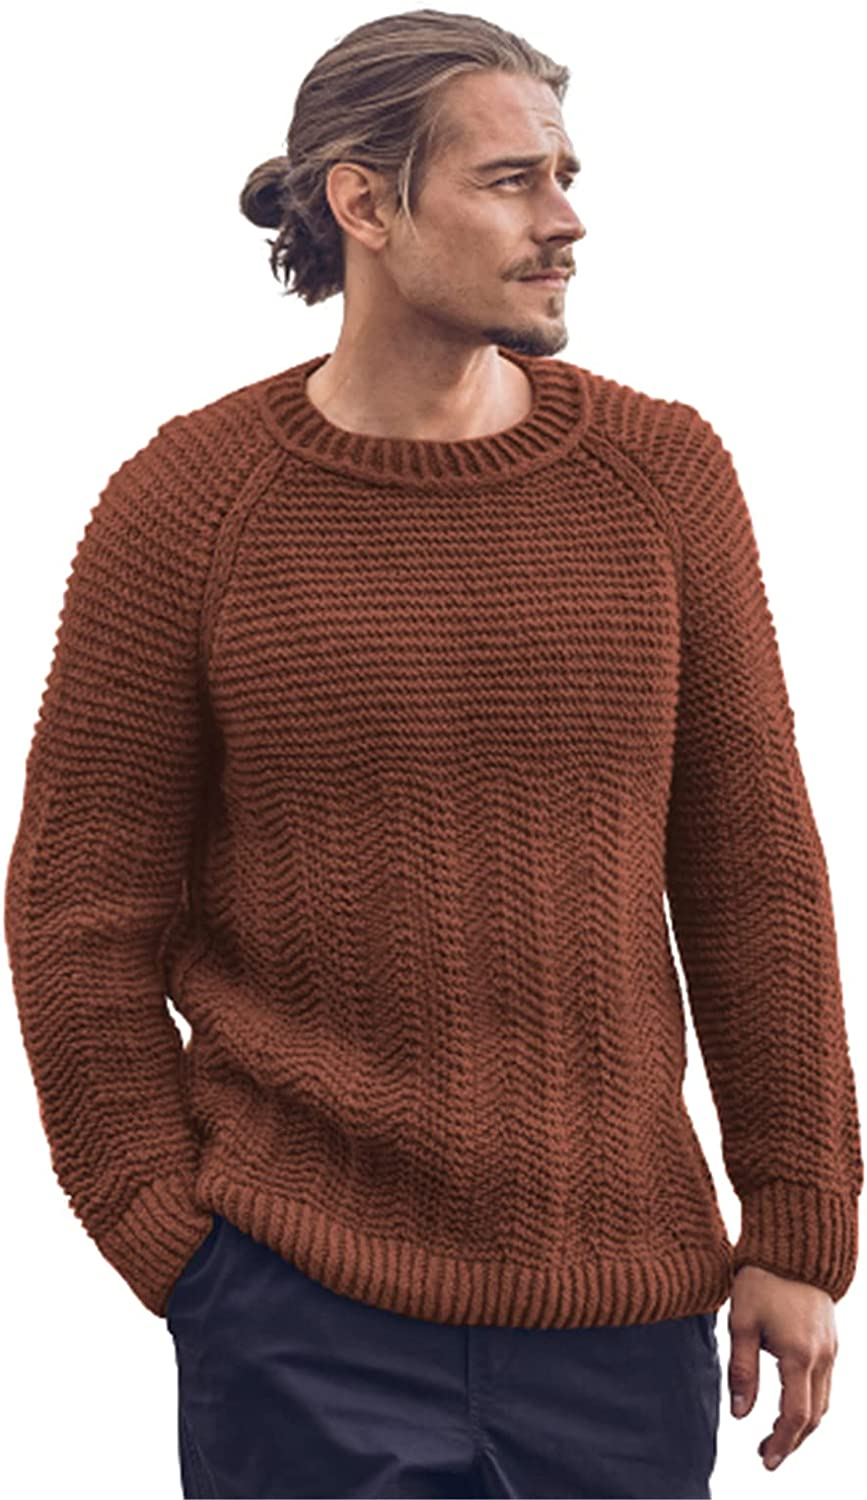 EverNight Mens Crew Neck Knitted Jumper,Casual Slim Fit Knitted Pullover,Winter Solid Colour Ribbed Jumpers Sweater for Men